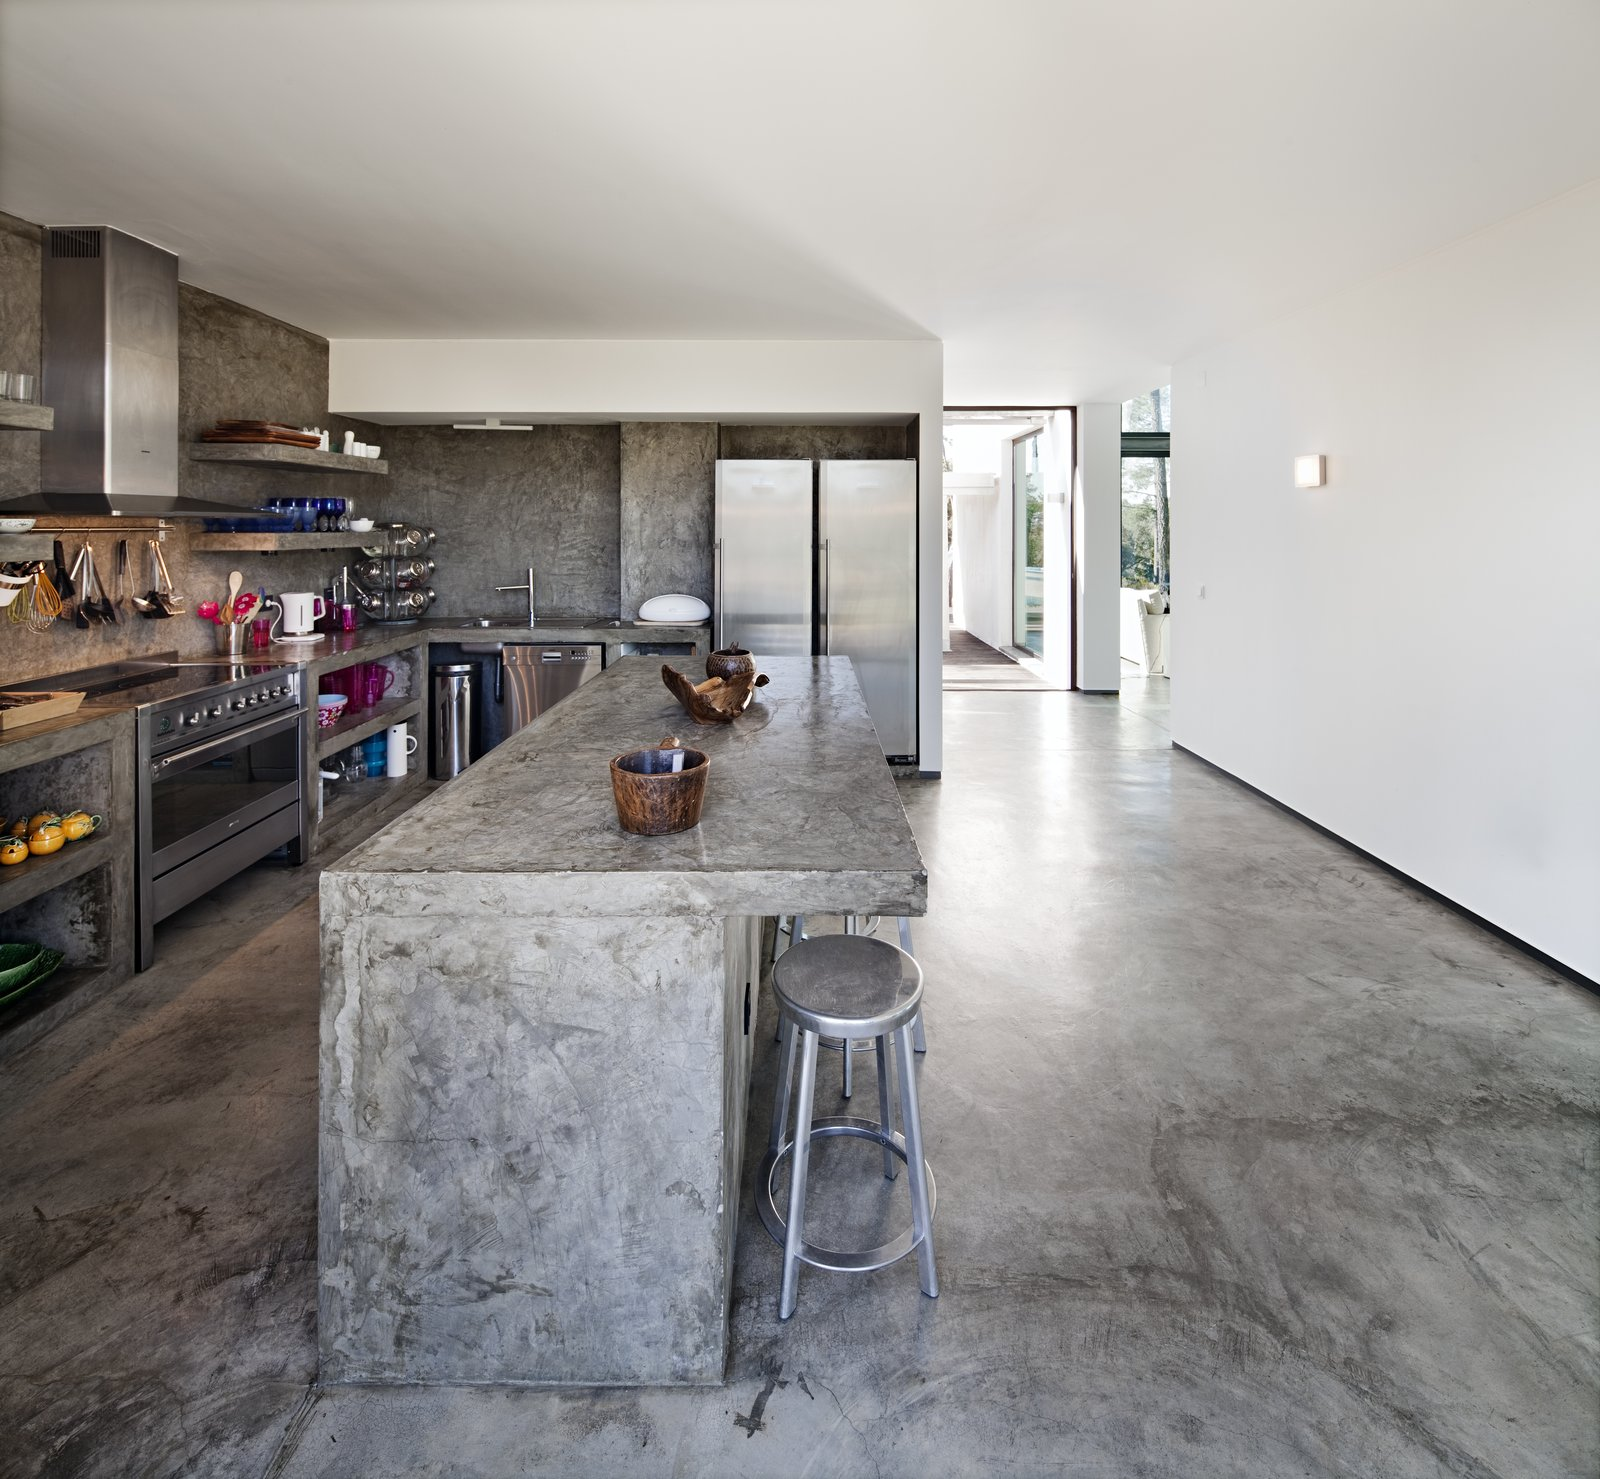 Kitchen, Concrete, Dishwasher, Range Hood, Wall Oven, Refrigerator, Drop In, Concrete, Open, Wall, Cooktops, Ceiling, and Concrete  Best Kitchen Concrete Cooktops Ceiling Wall Range Hood Photos from Escape to a Light-Filled, Beach-Meets-Forest Retreat in Portugal